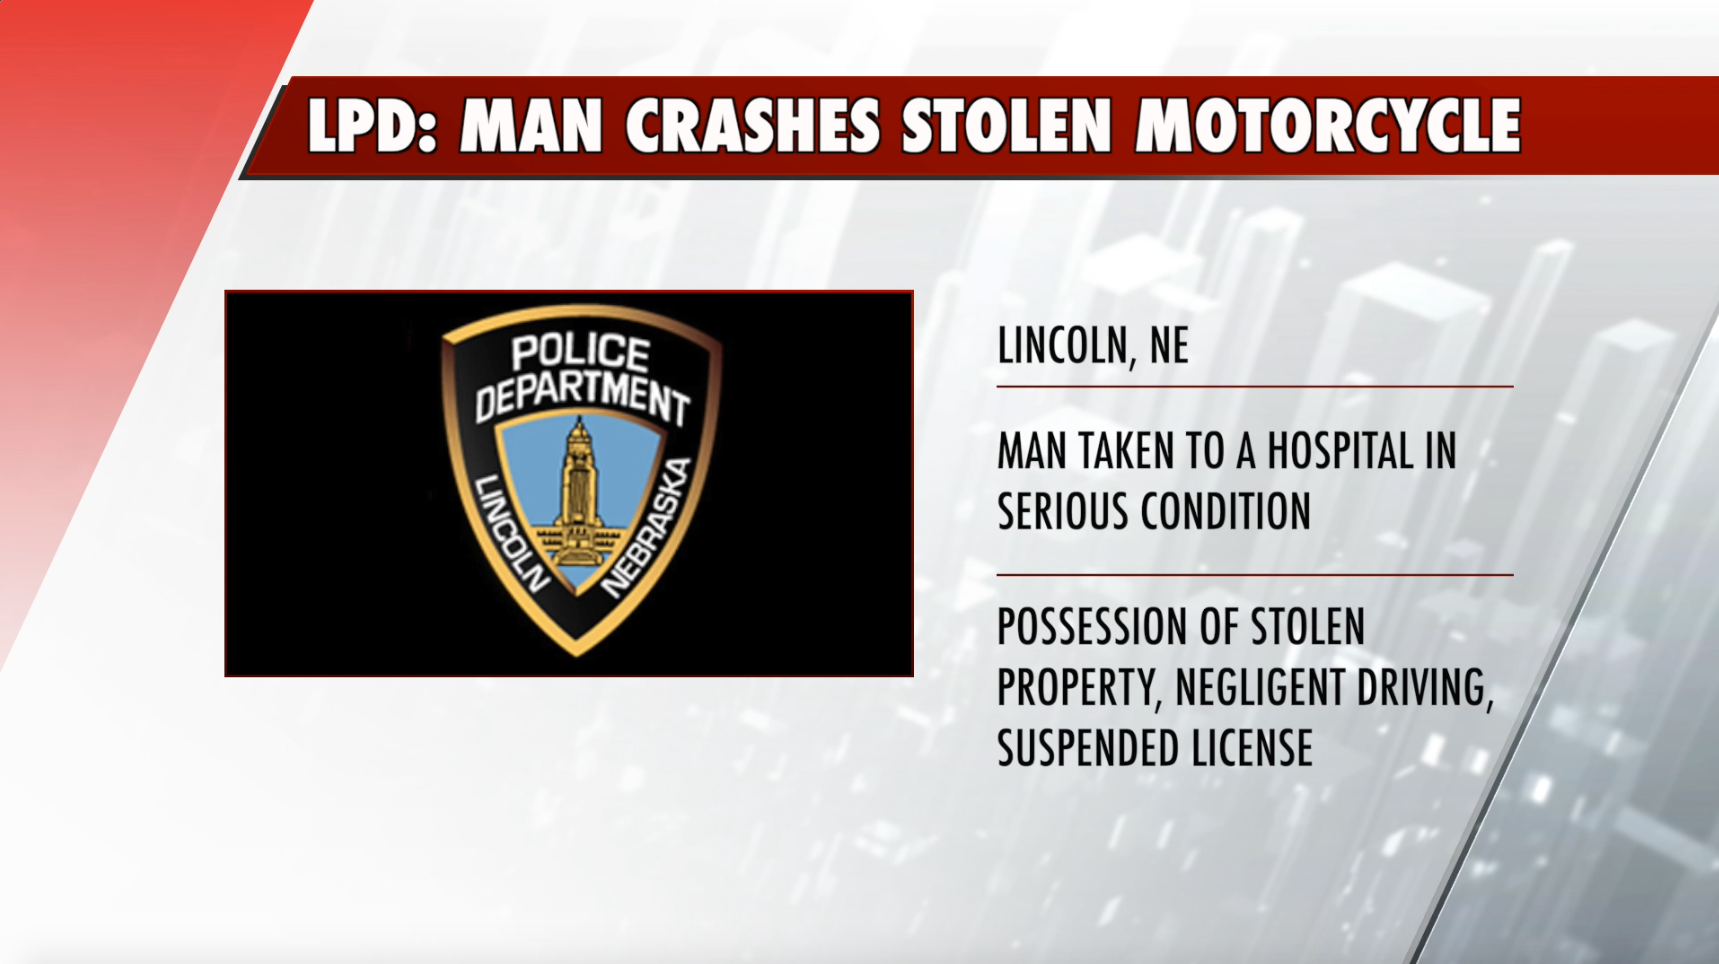 Lincoln man crashes stolen motorcycle, bike bursts into flames